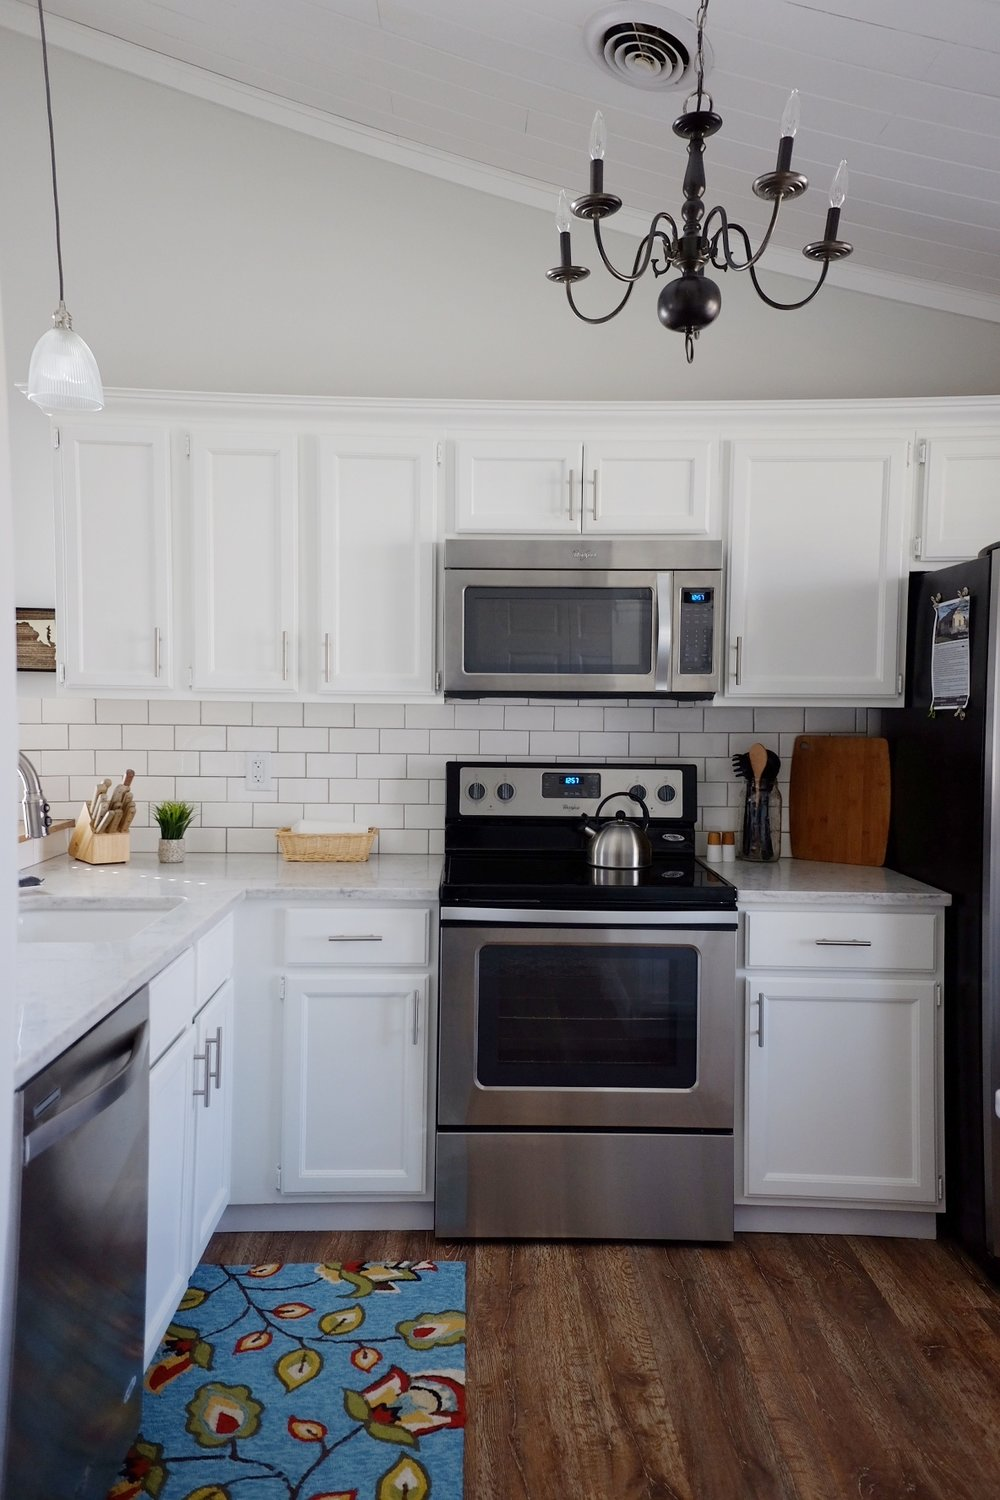 Paint: Valspar cabinet paint -pure white (semi-gloss), rug: TJ MAXX, Chandalier: Home Depot (spray-painted black); pendant lights: lowe's; backsplash: white subway tile w/DeLorean Gray grout)